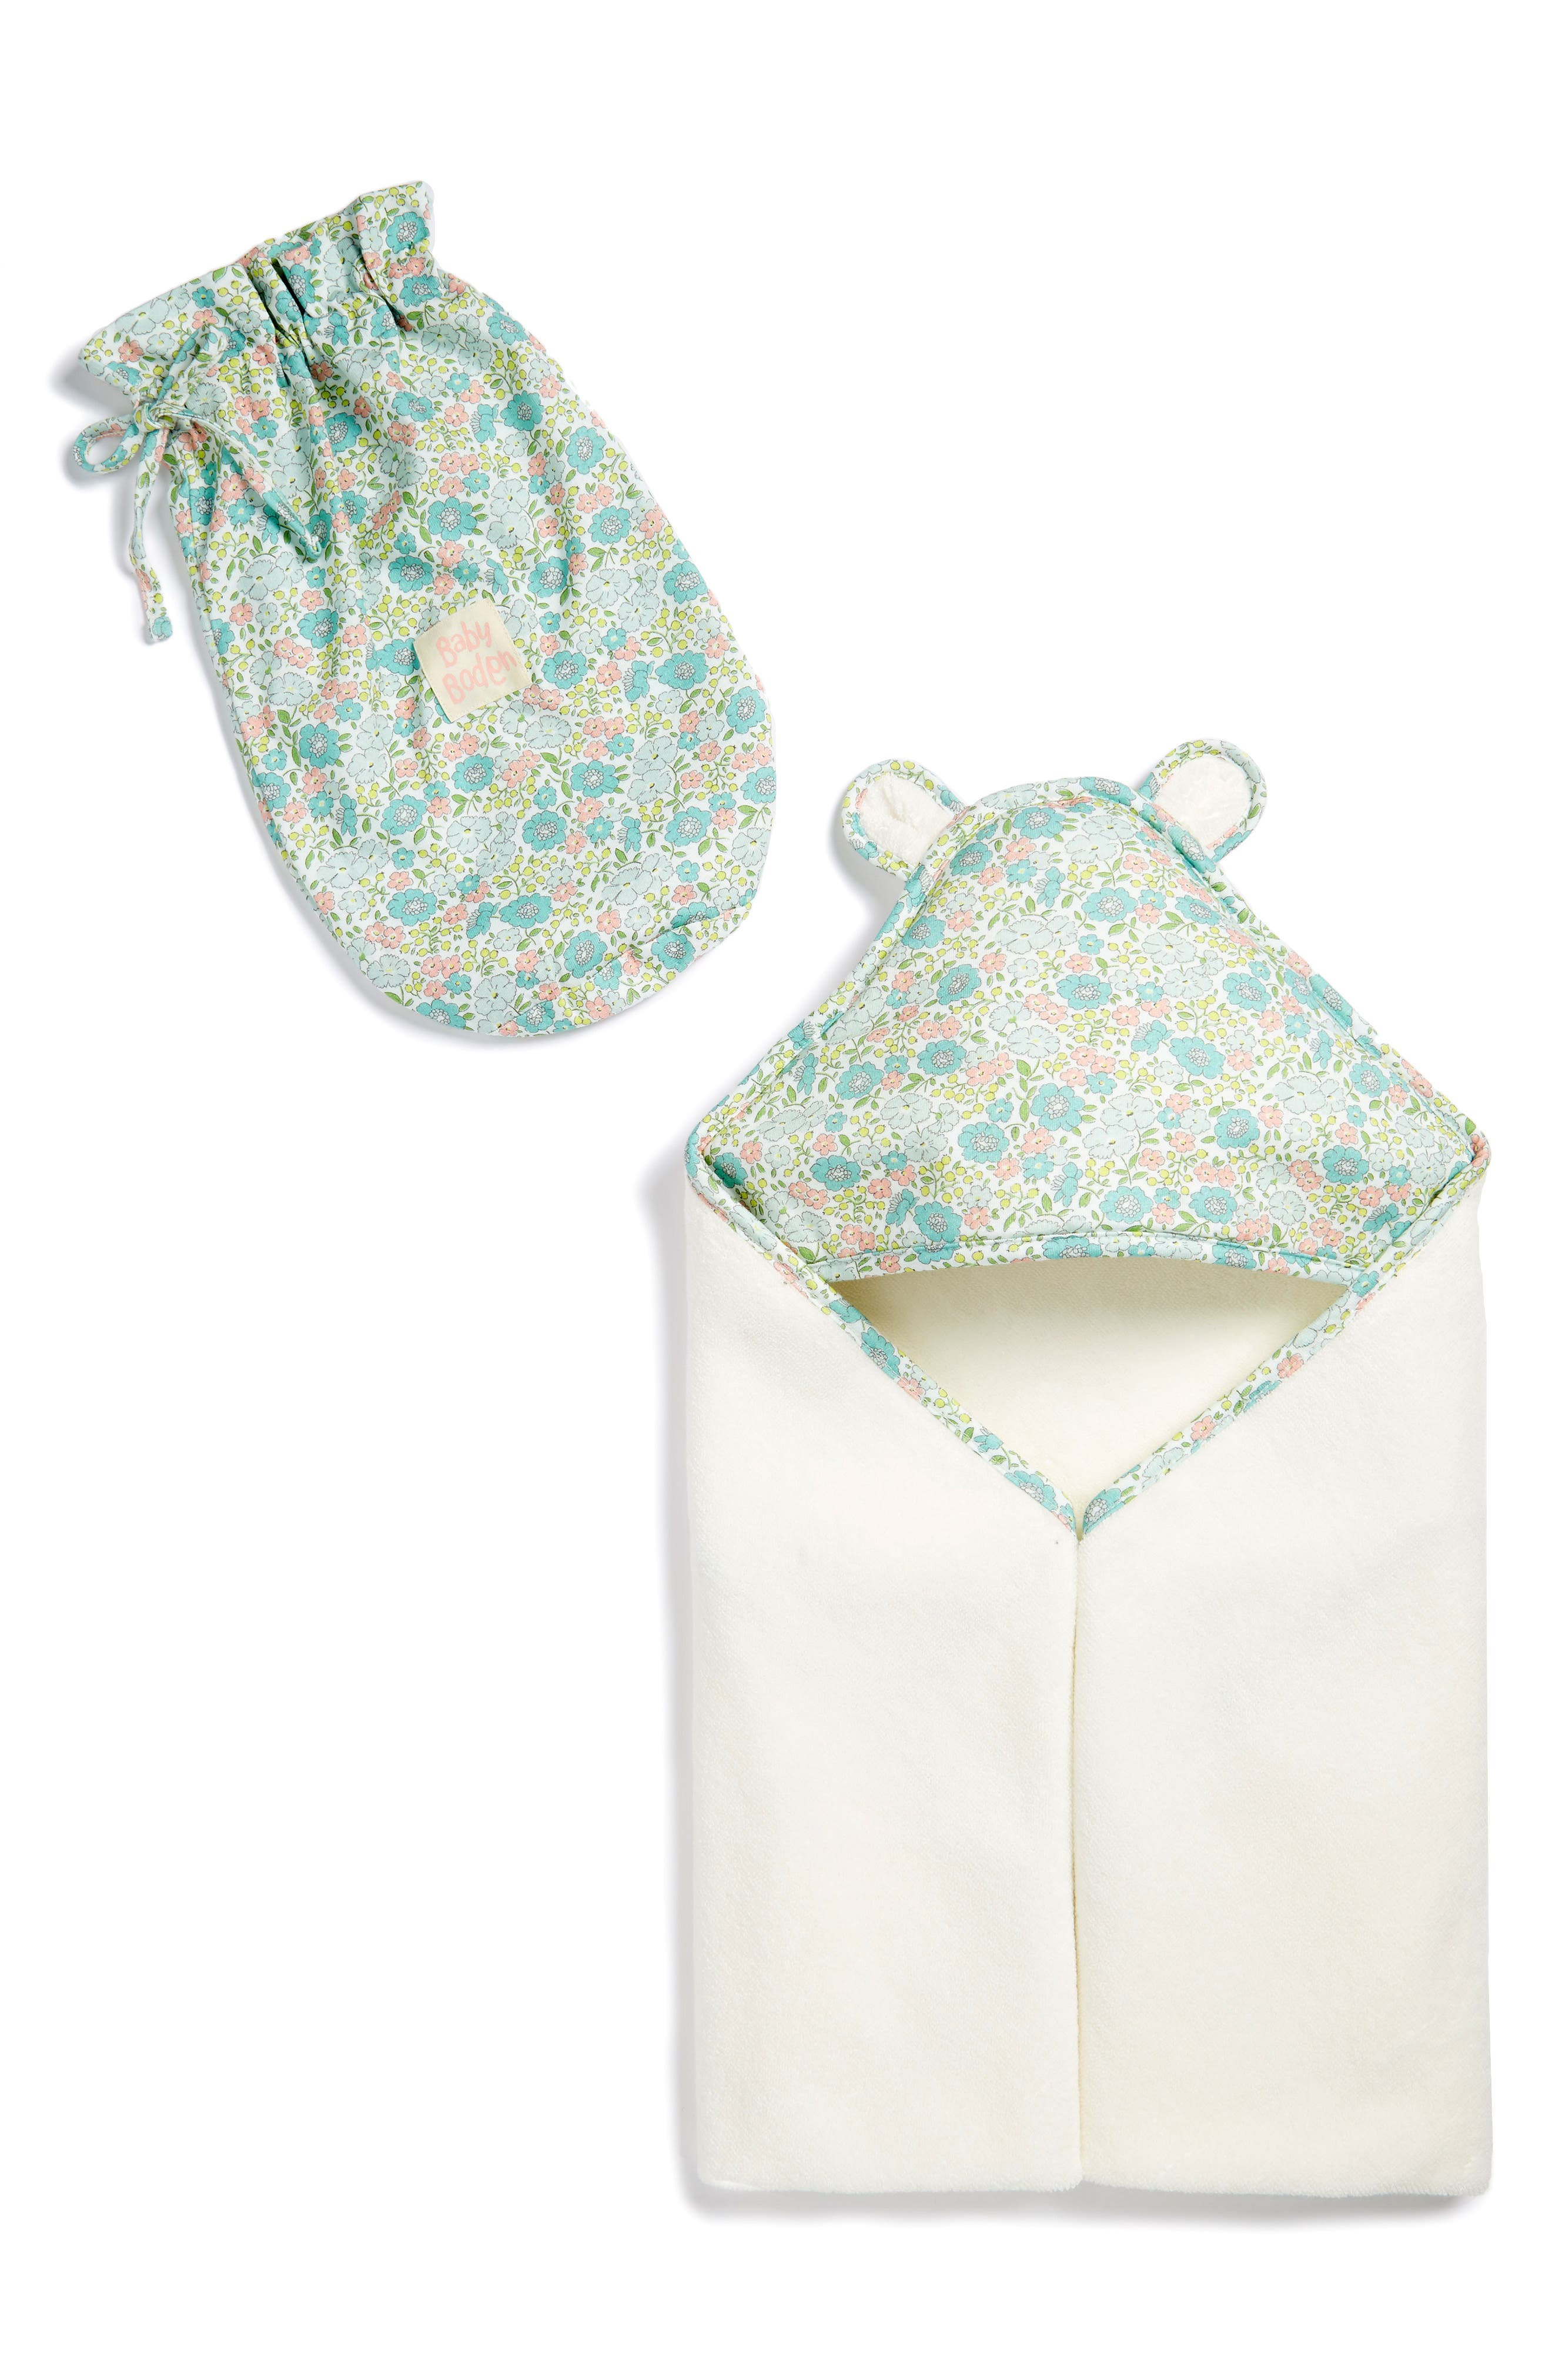 MINI BODEN Hooded Towel & Drawstring Bag Set